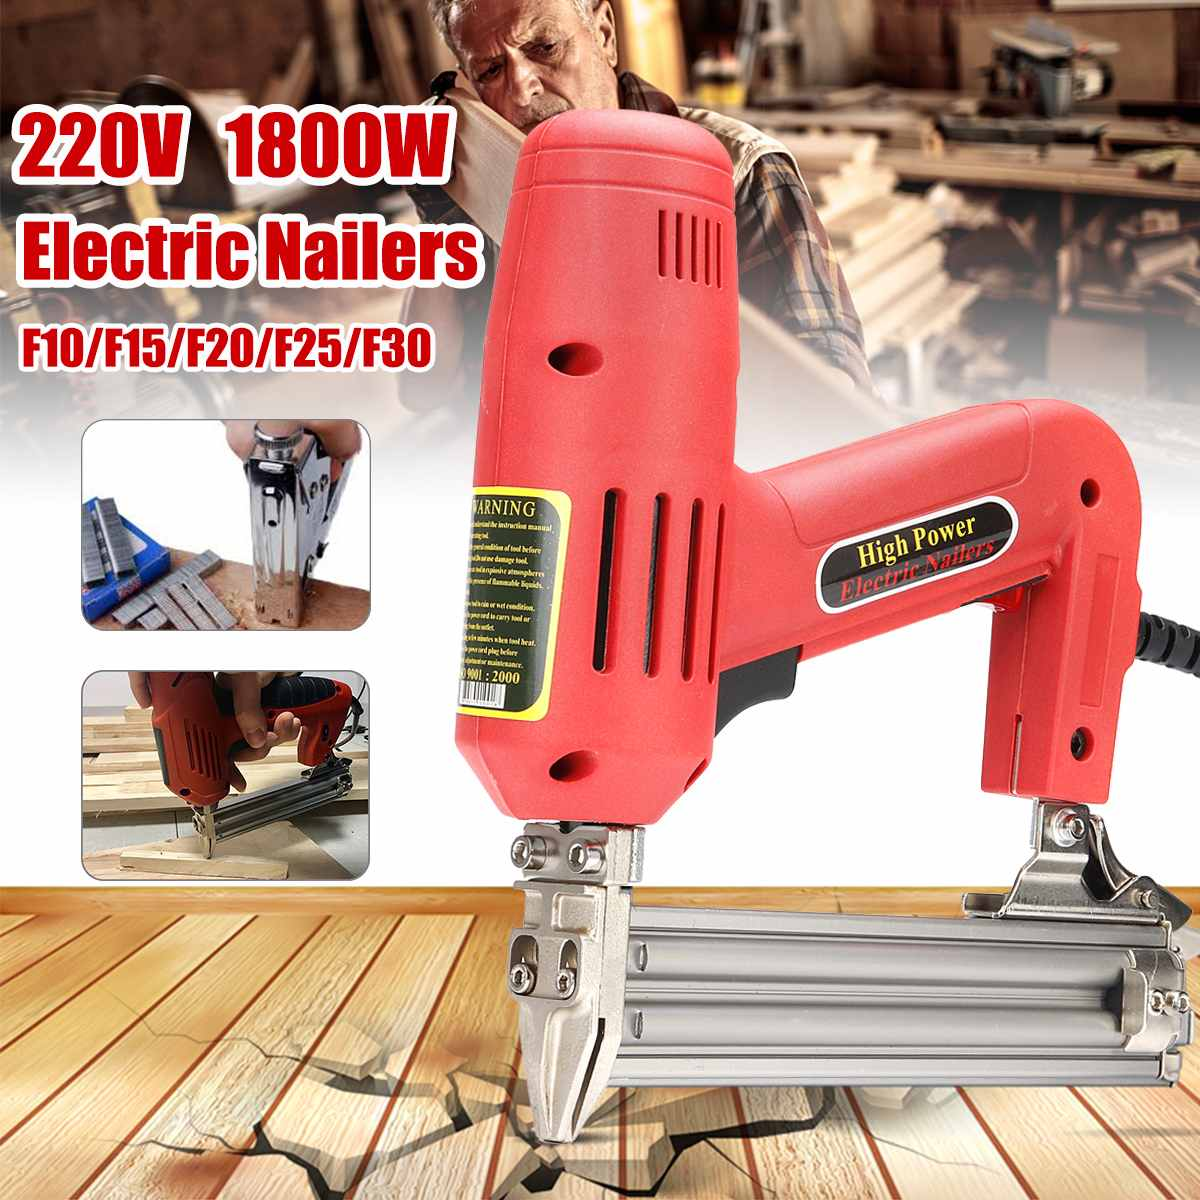 220V 1800W Electric Nailer And Stapler For Furniture Staple For Gun For Frame With Staples Nails Carpentry Woodworking Tools